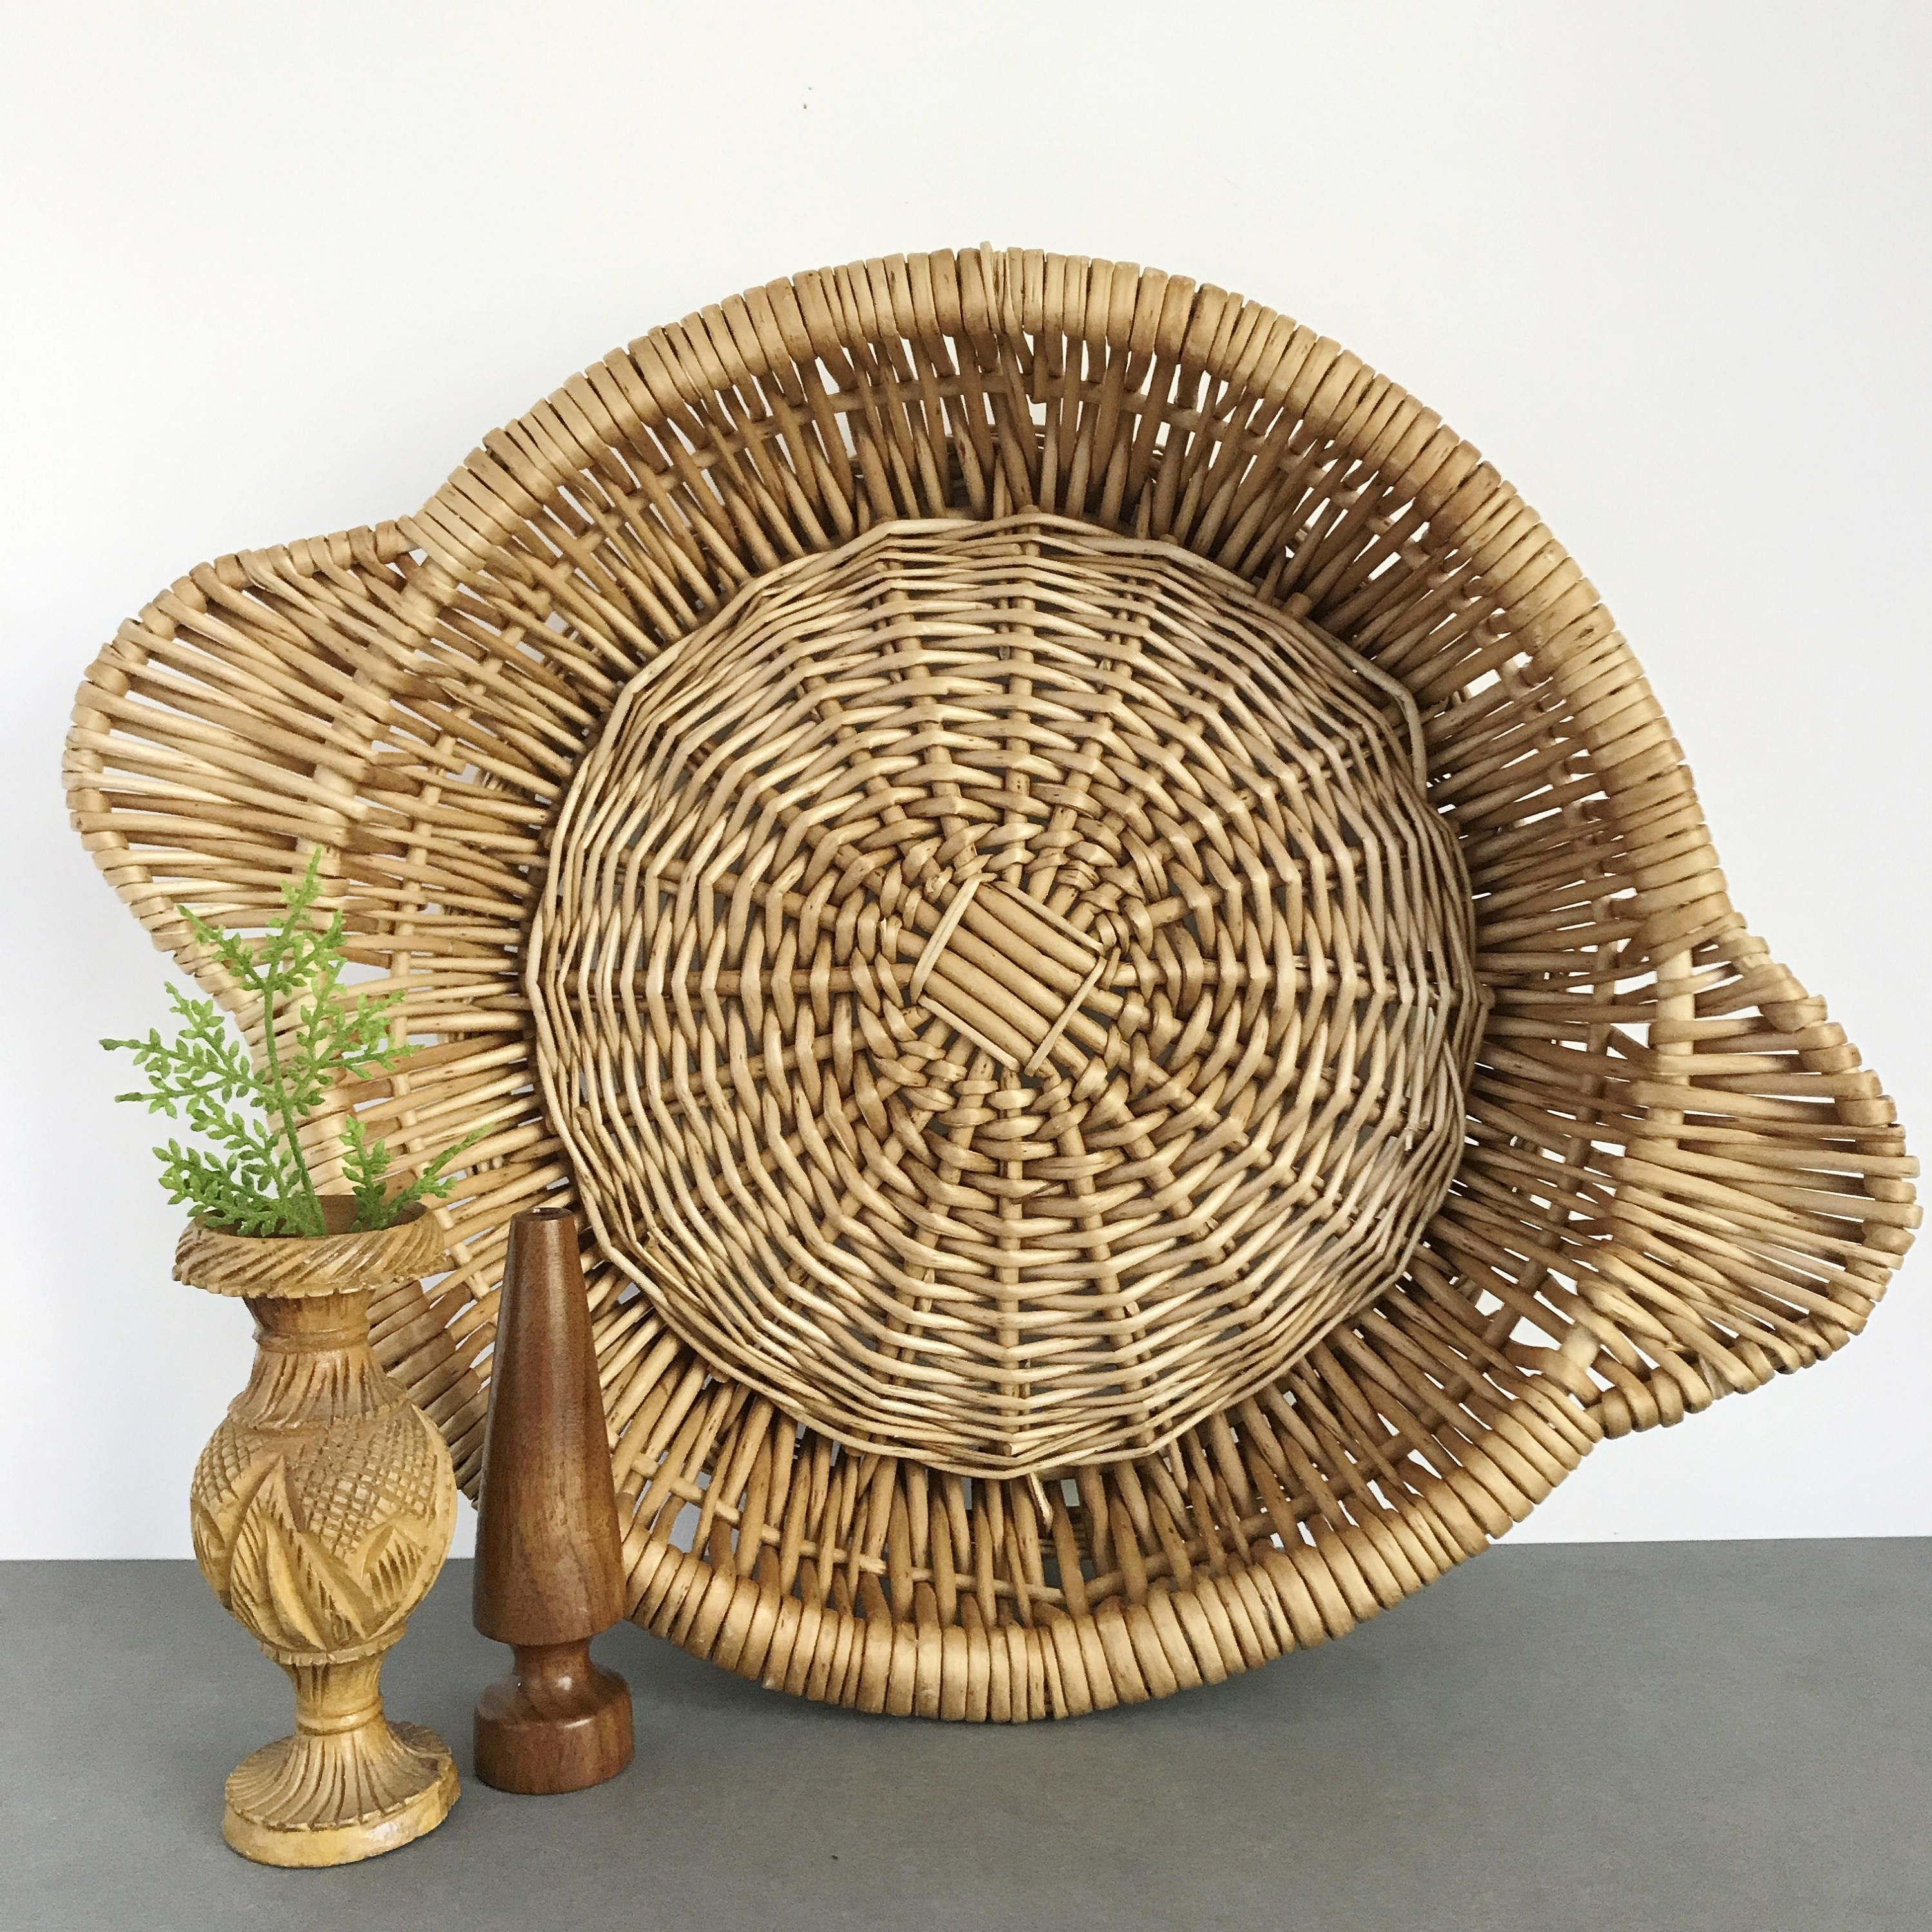 Vintage woven rattan wicker round basket wall hanging basket vintage woven rattan wicker round basket wall hanging basket basket with handles shallow amipublicfo Choice Image